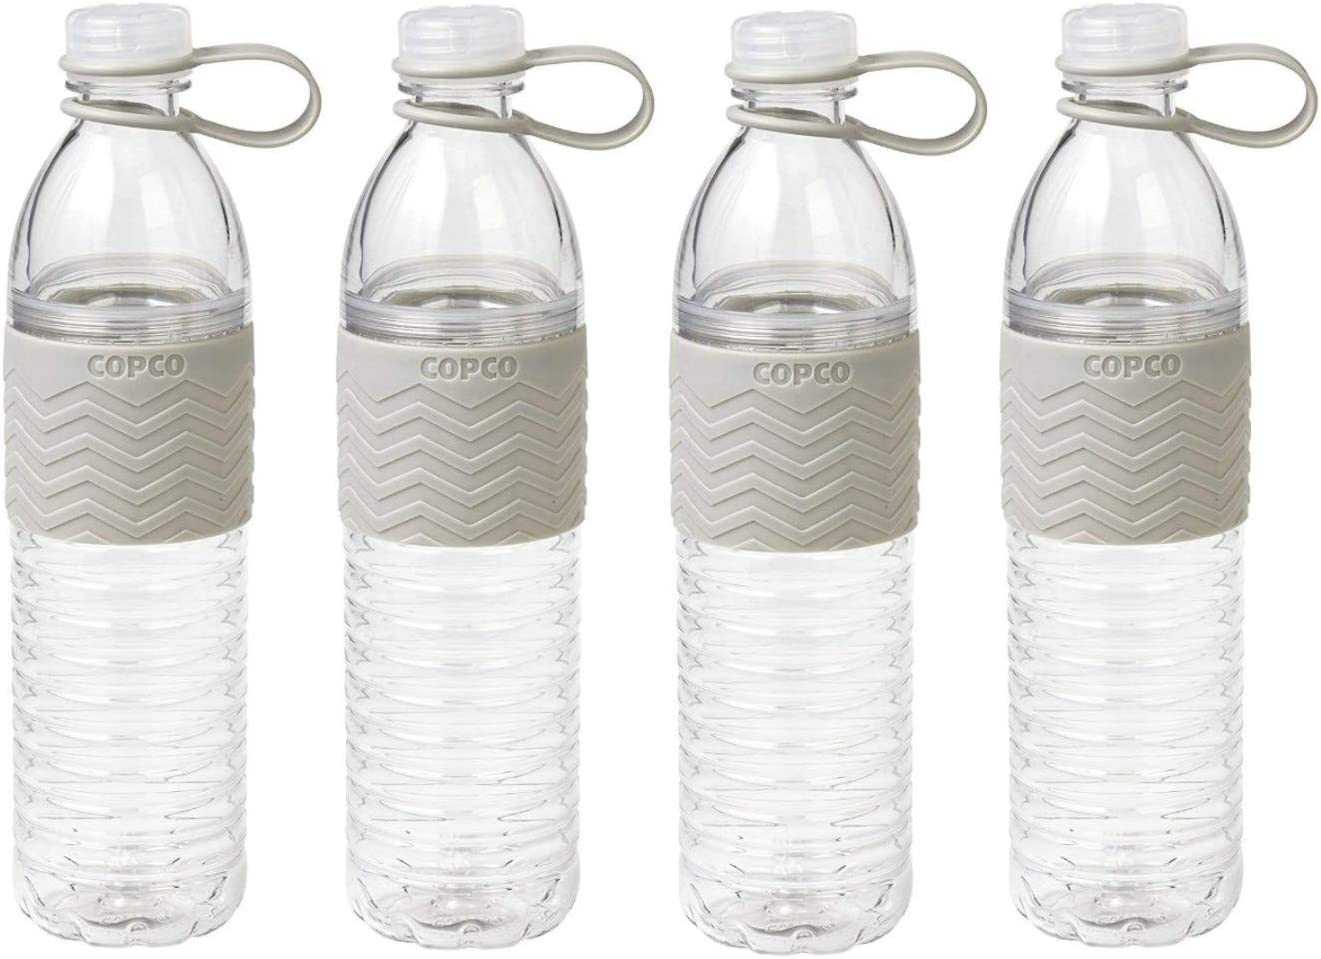 Copco Hydra Reusable Tritan Water Bottle with Spill Resistant Lid and Non-Slip Sleeve 4 Pack